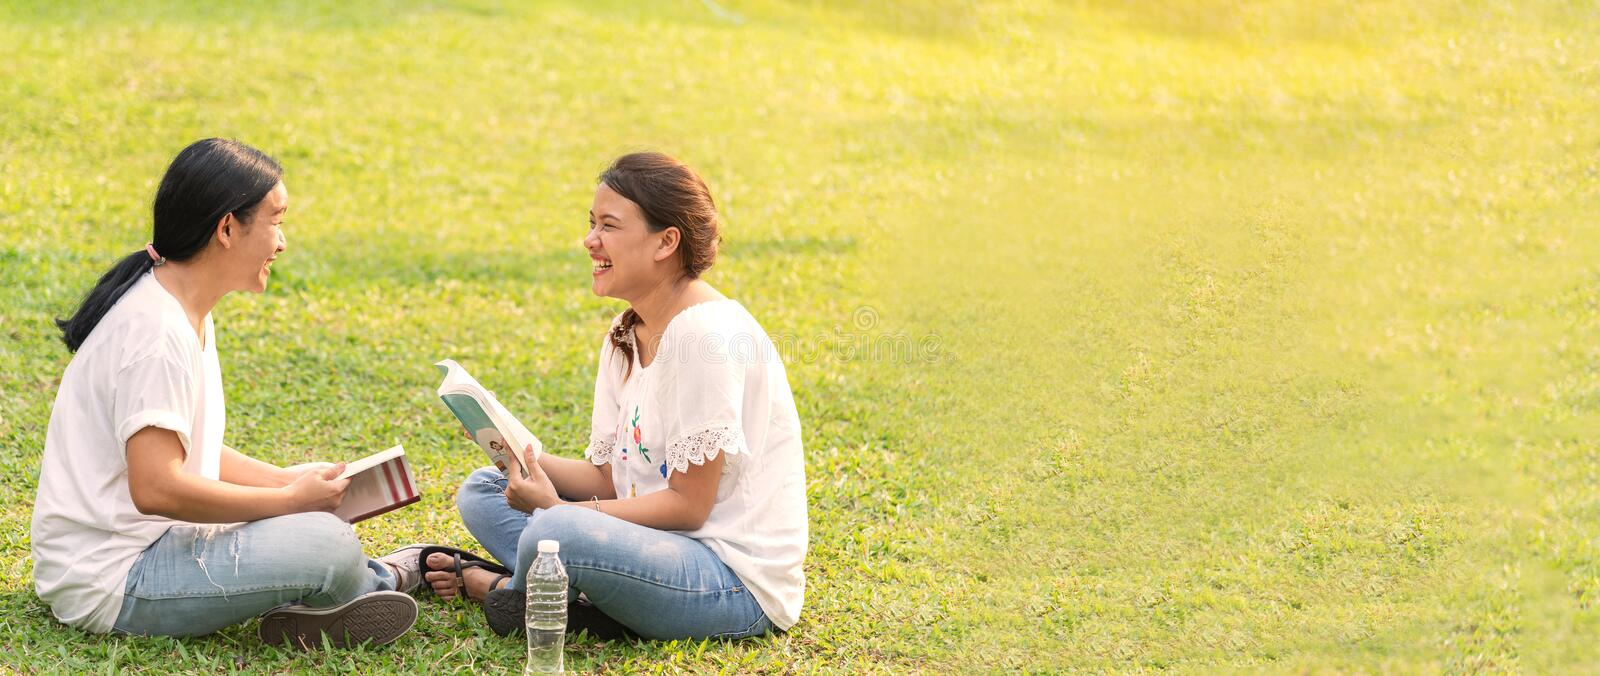 Two young women sitting having a happy time and reading book in the park royalty free stock photos